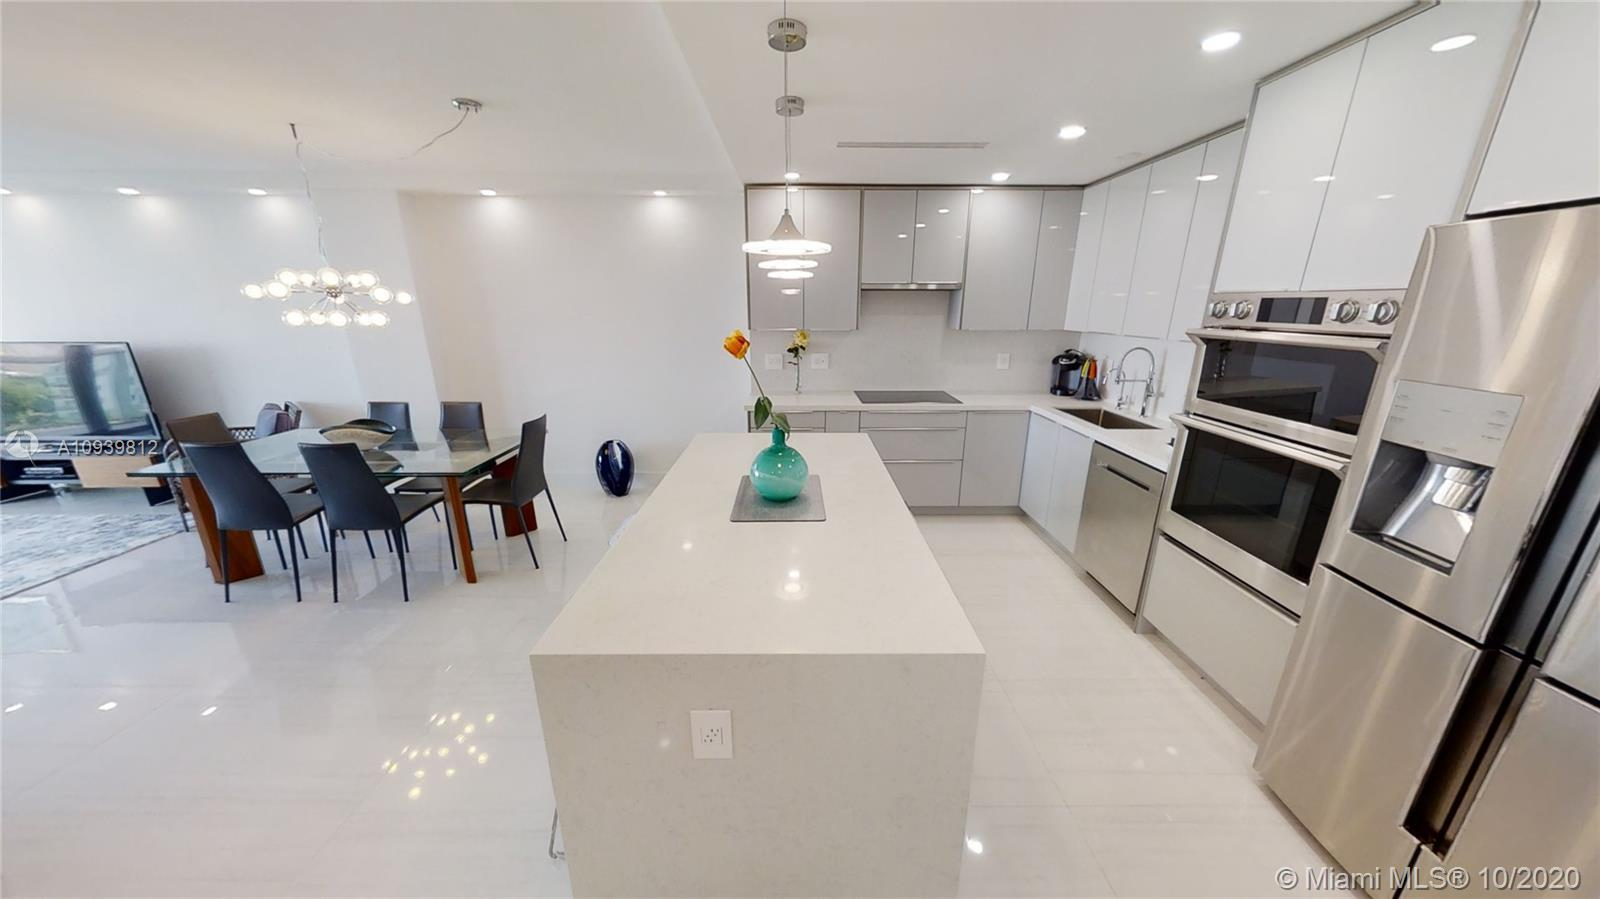 No often Available No rental restrictions Gorgeous 2/2 1,549 sqft apartment in luxury Condo. Amazing